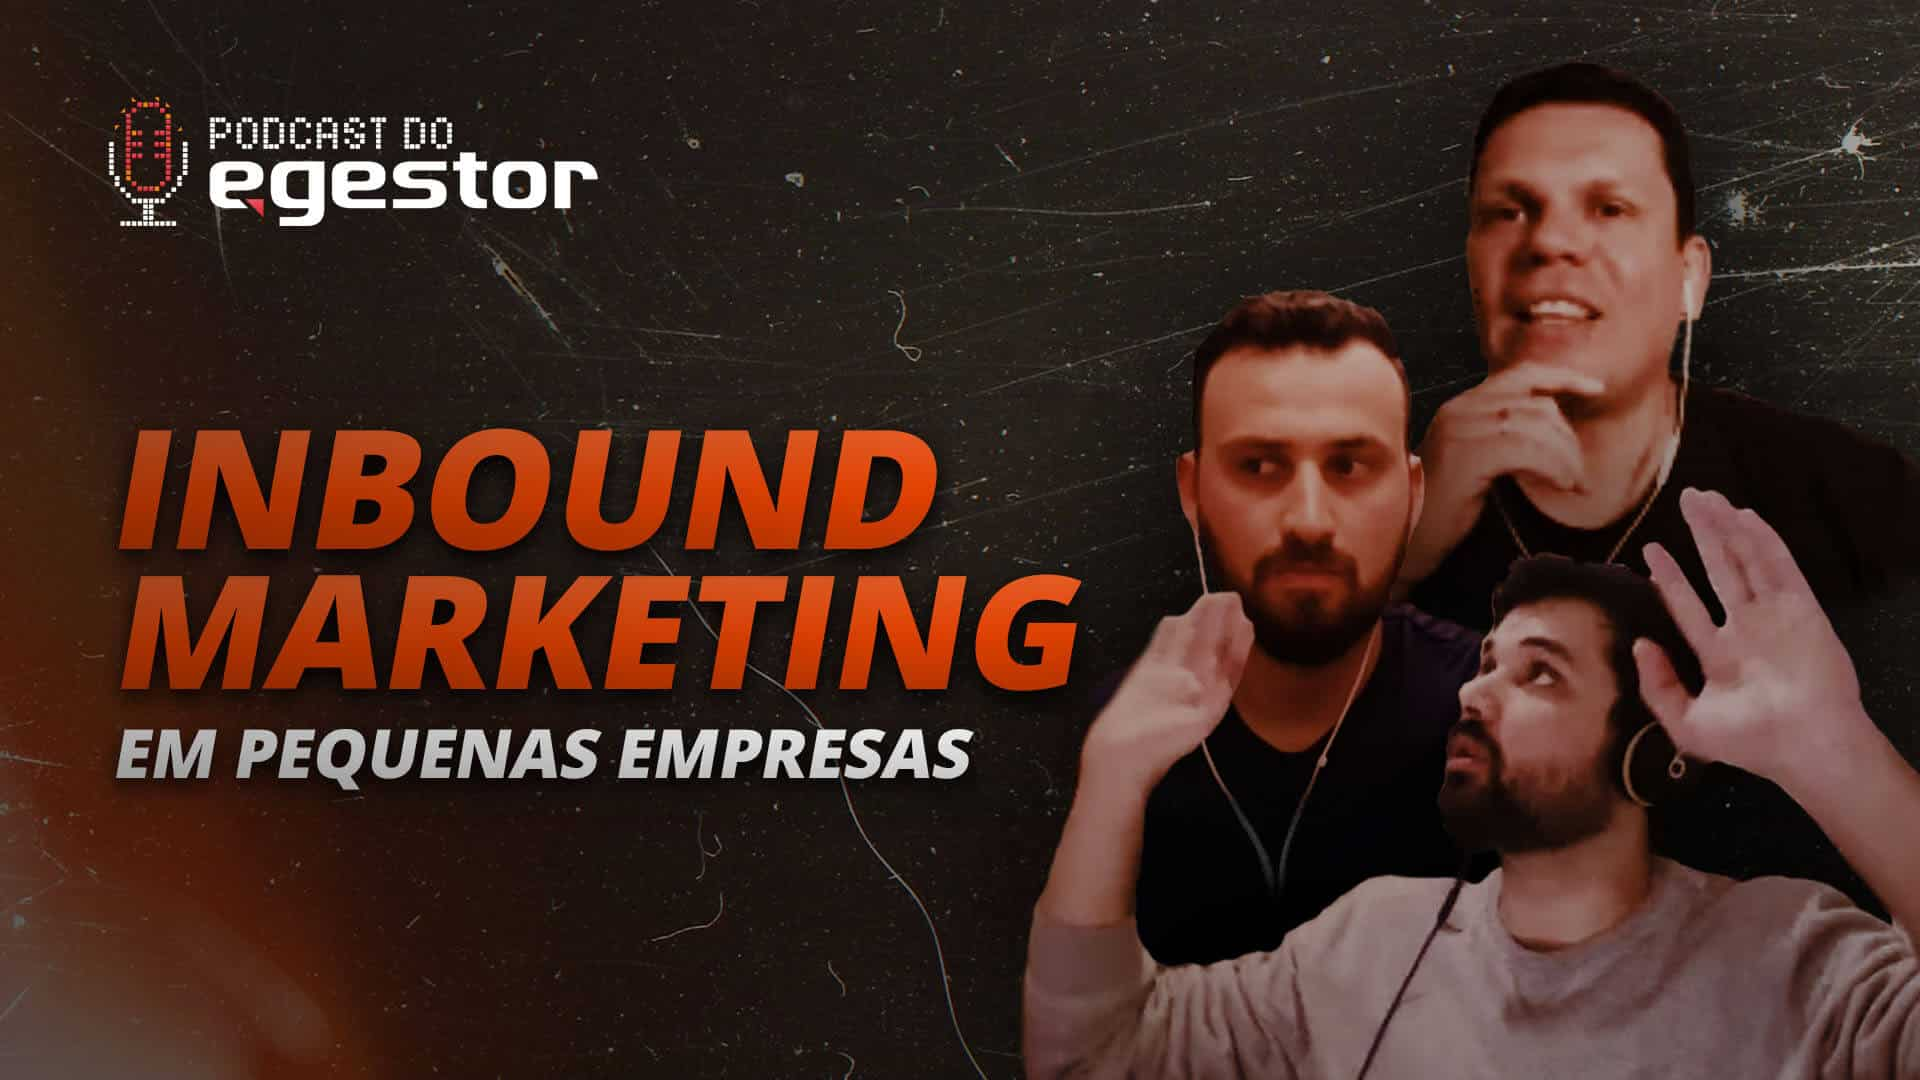 Inbound Marketing em pequenas empresas - PodCast do eGestor